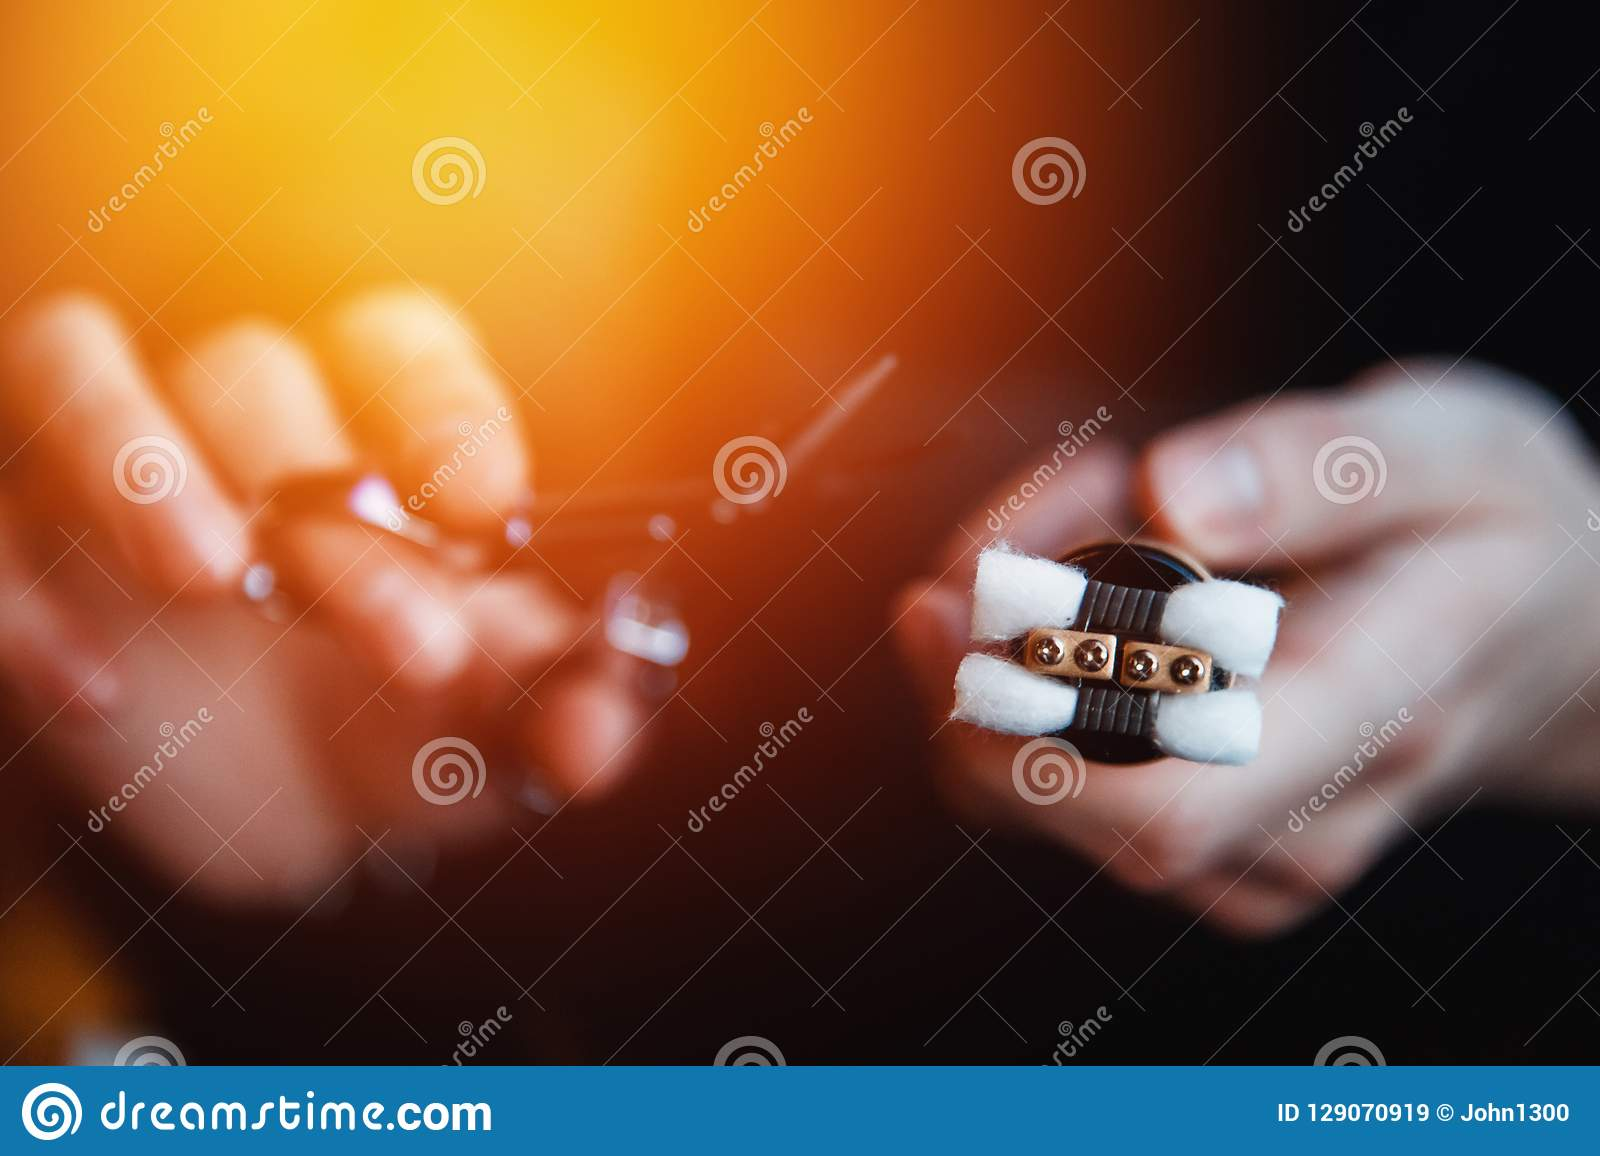 Electronic Cigarette For Vape Stock Image - Image of liquid, juice